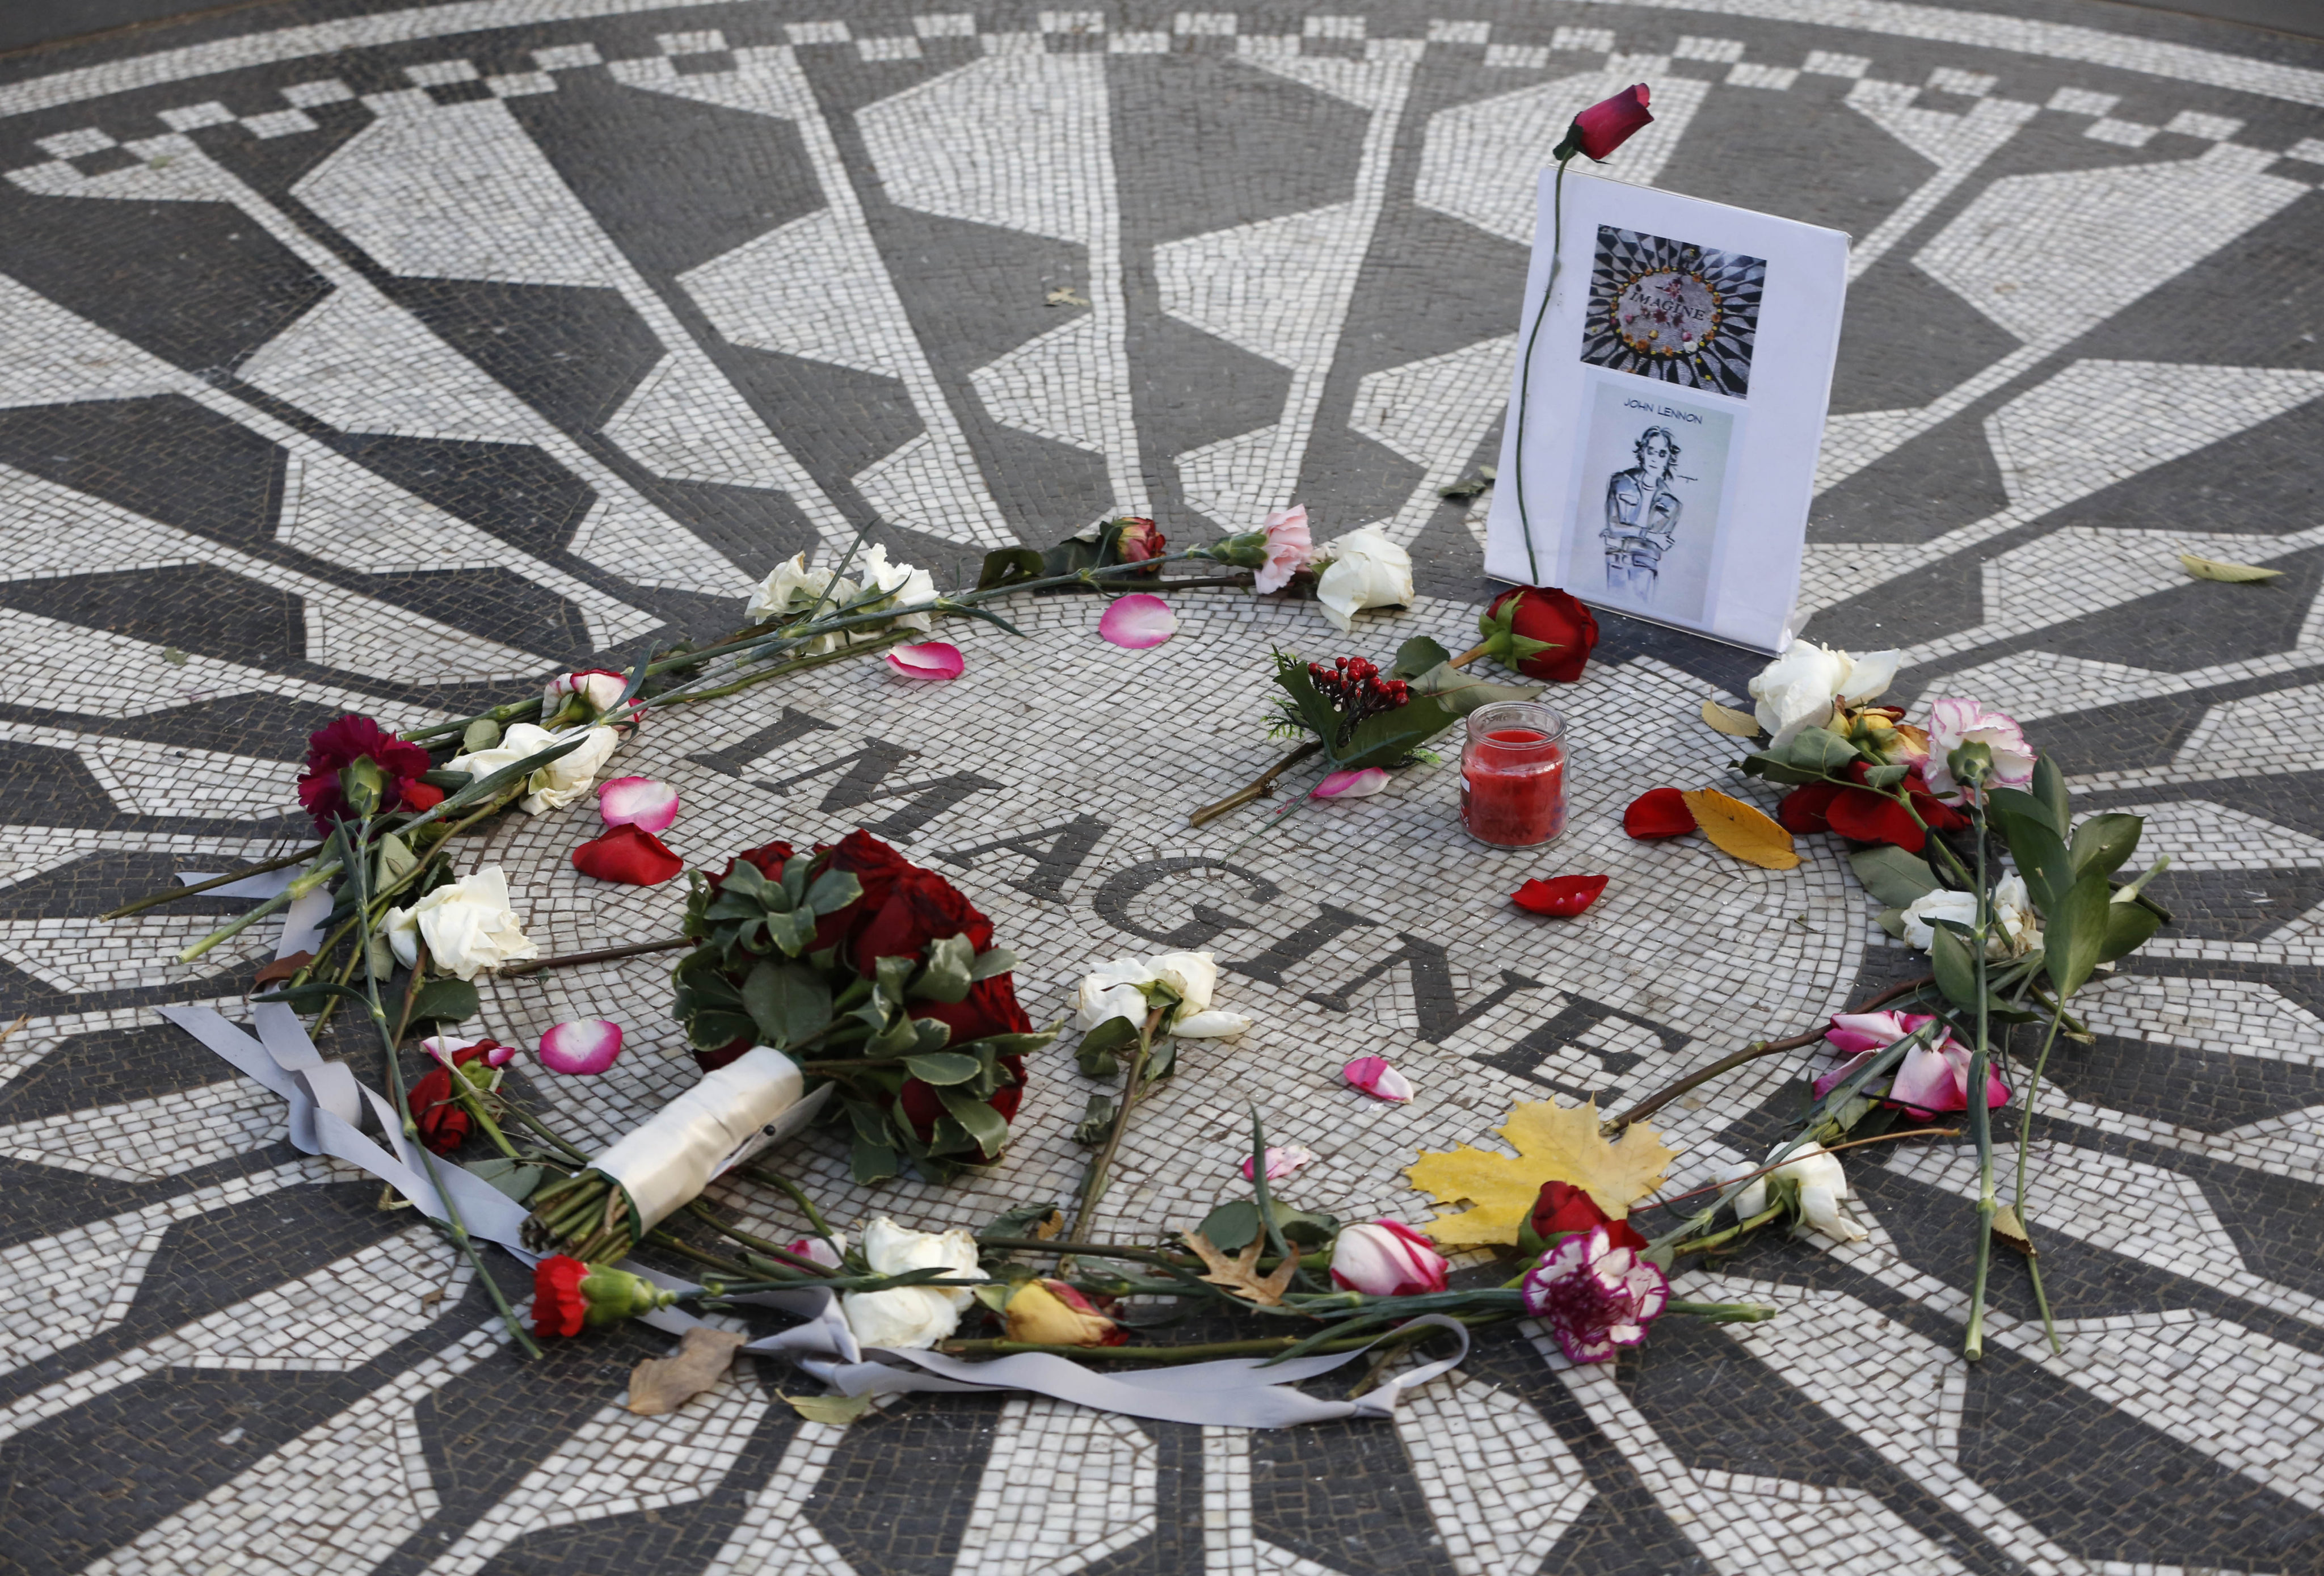 Willie Nile shares new details on the night John Lennon was killed